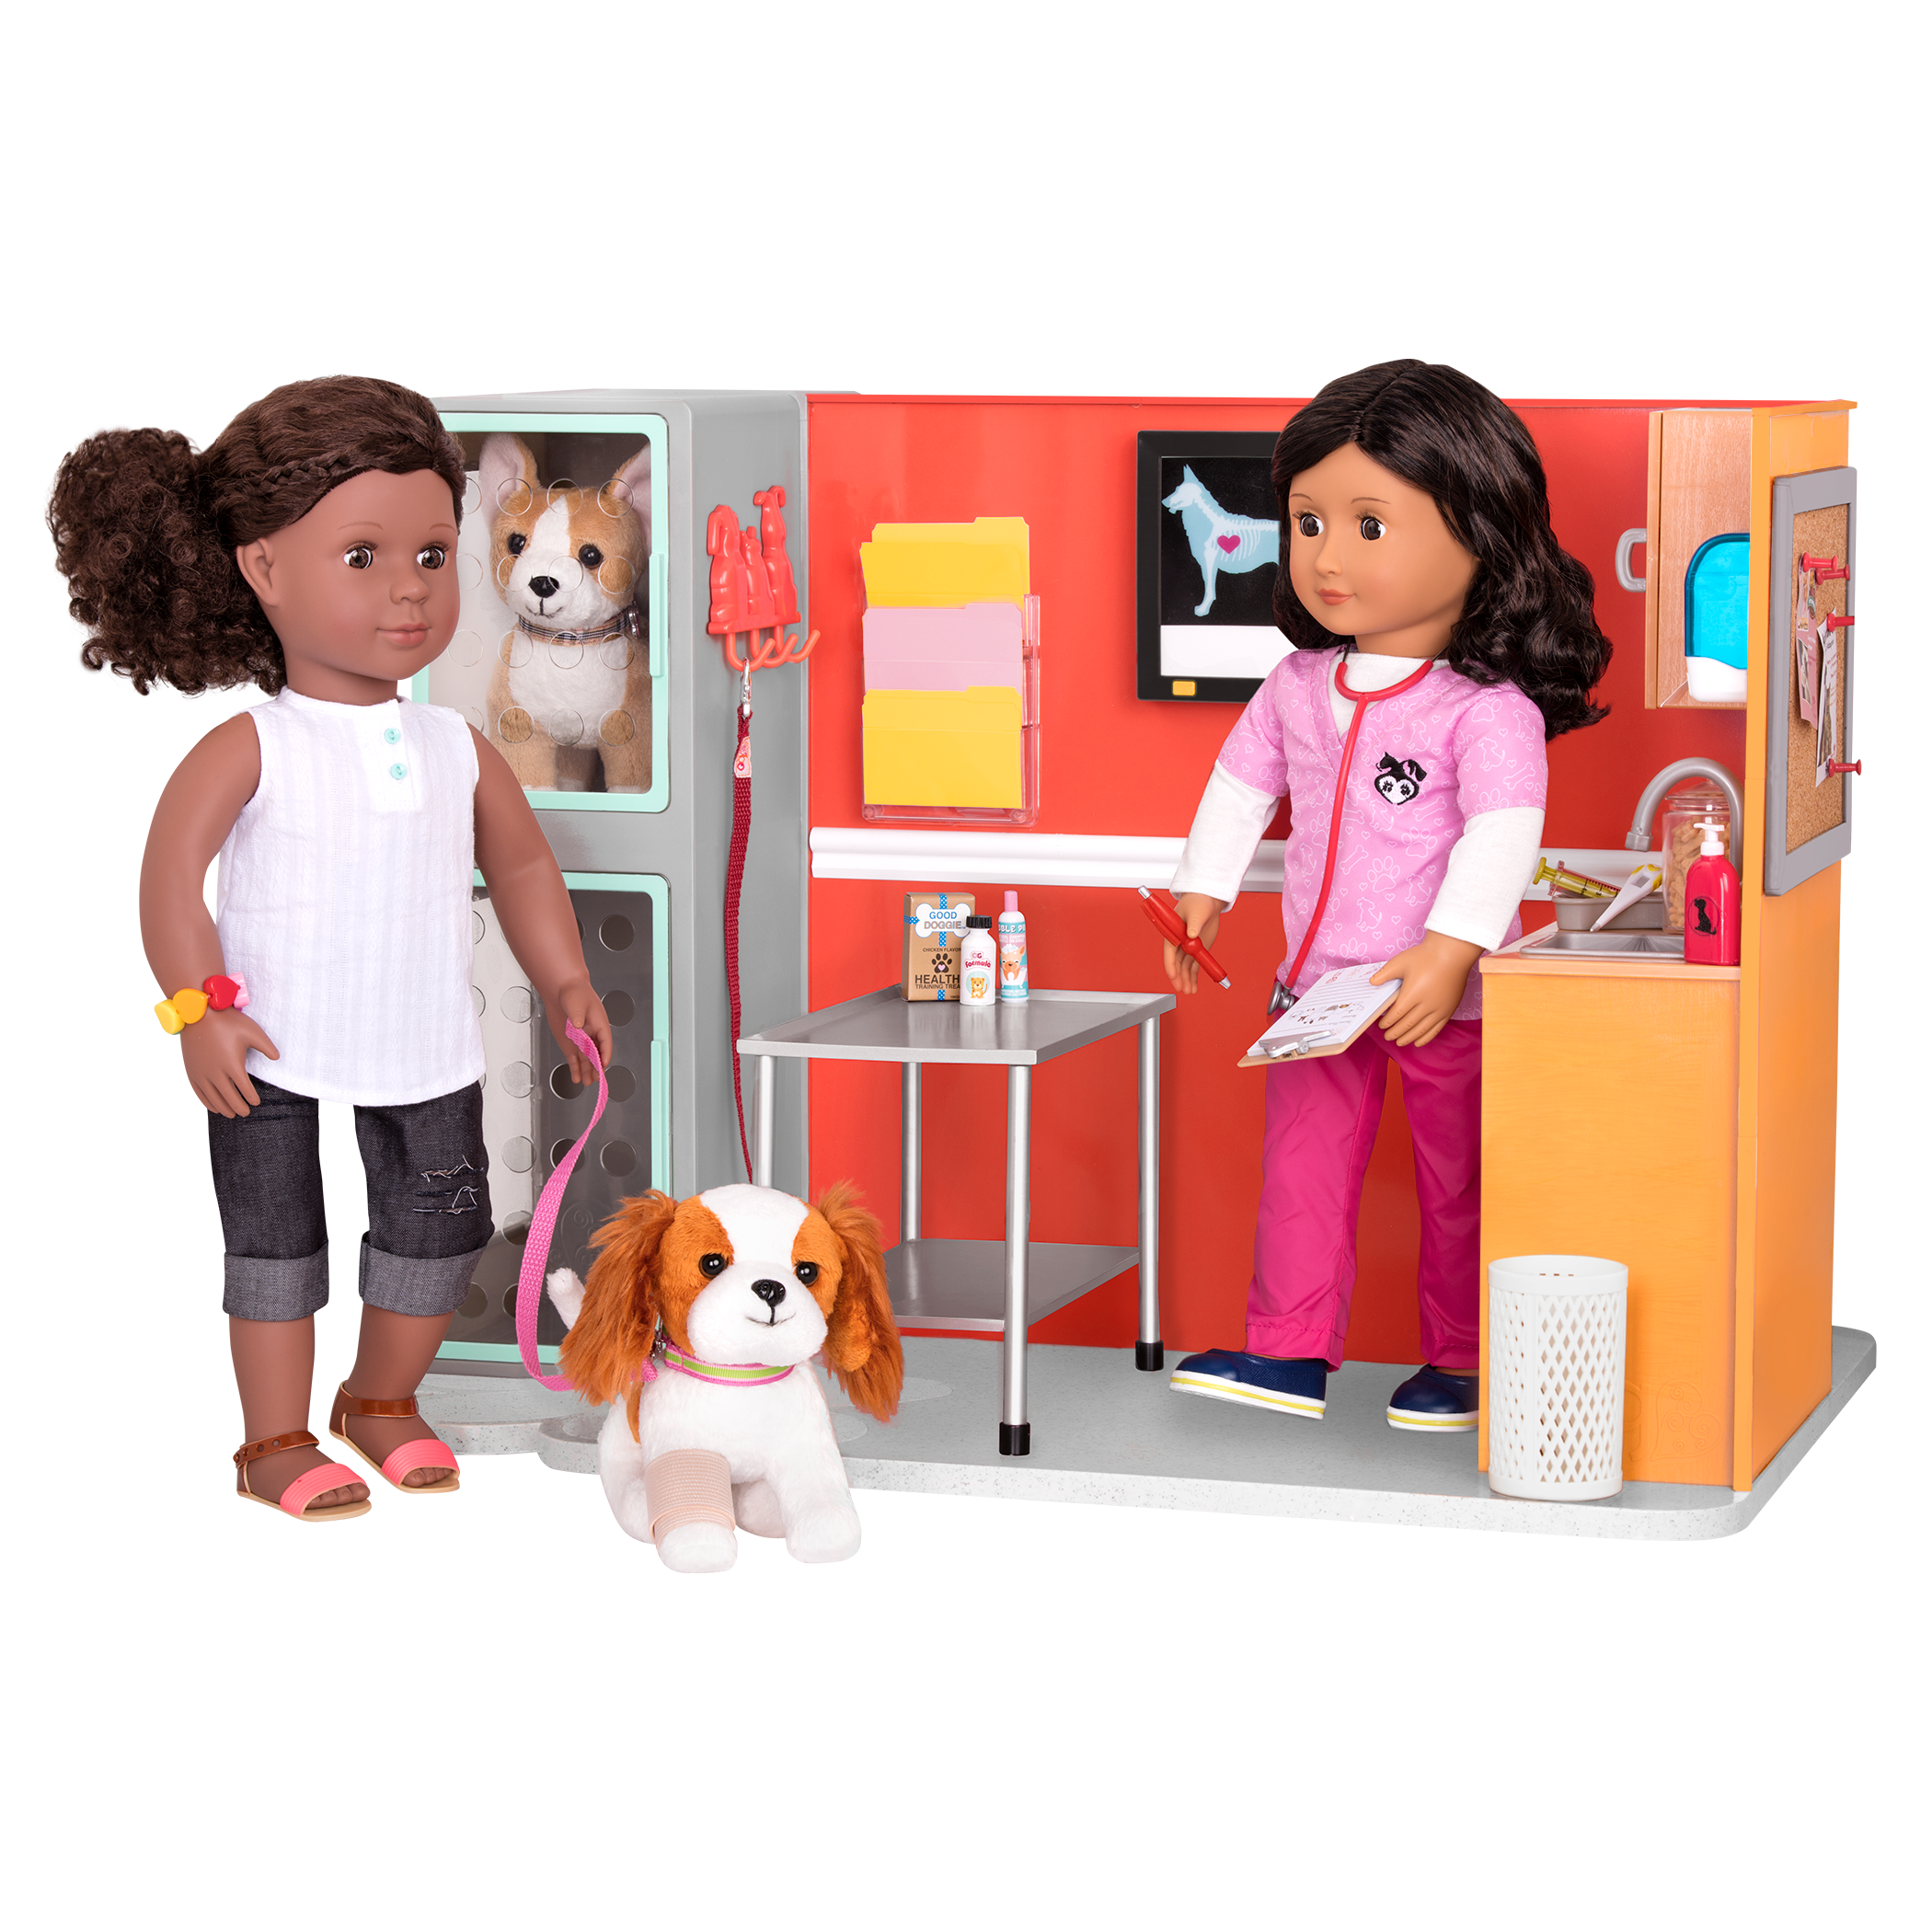 Healthy Paws Clinic Dedra and Blanca Dolls with pup